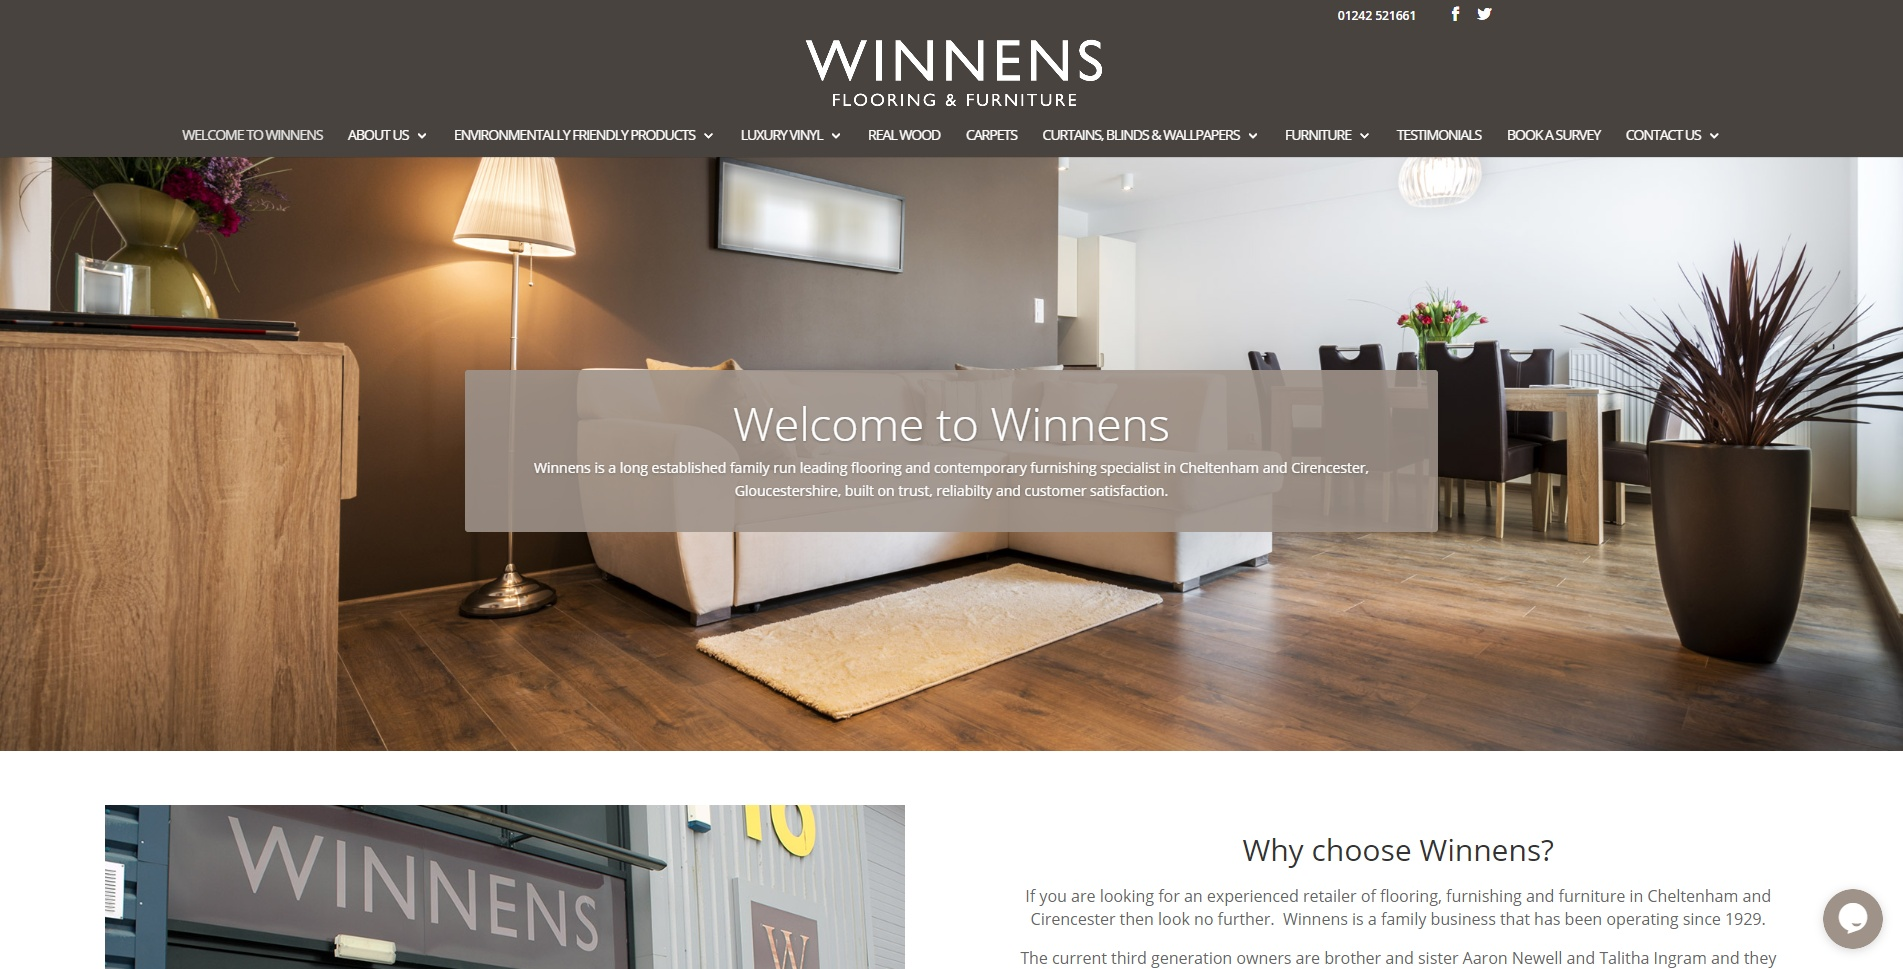 Winnens Screenshot